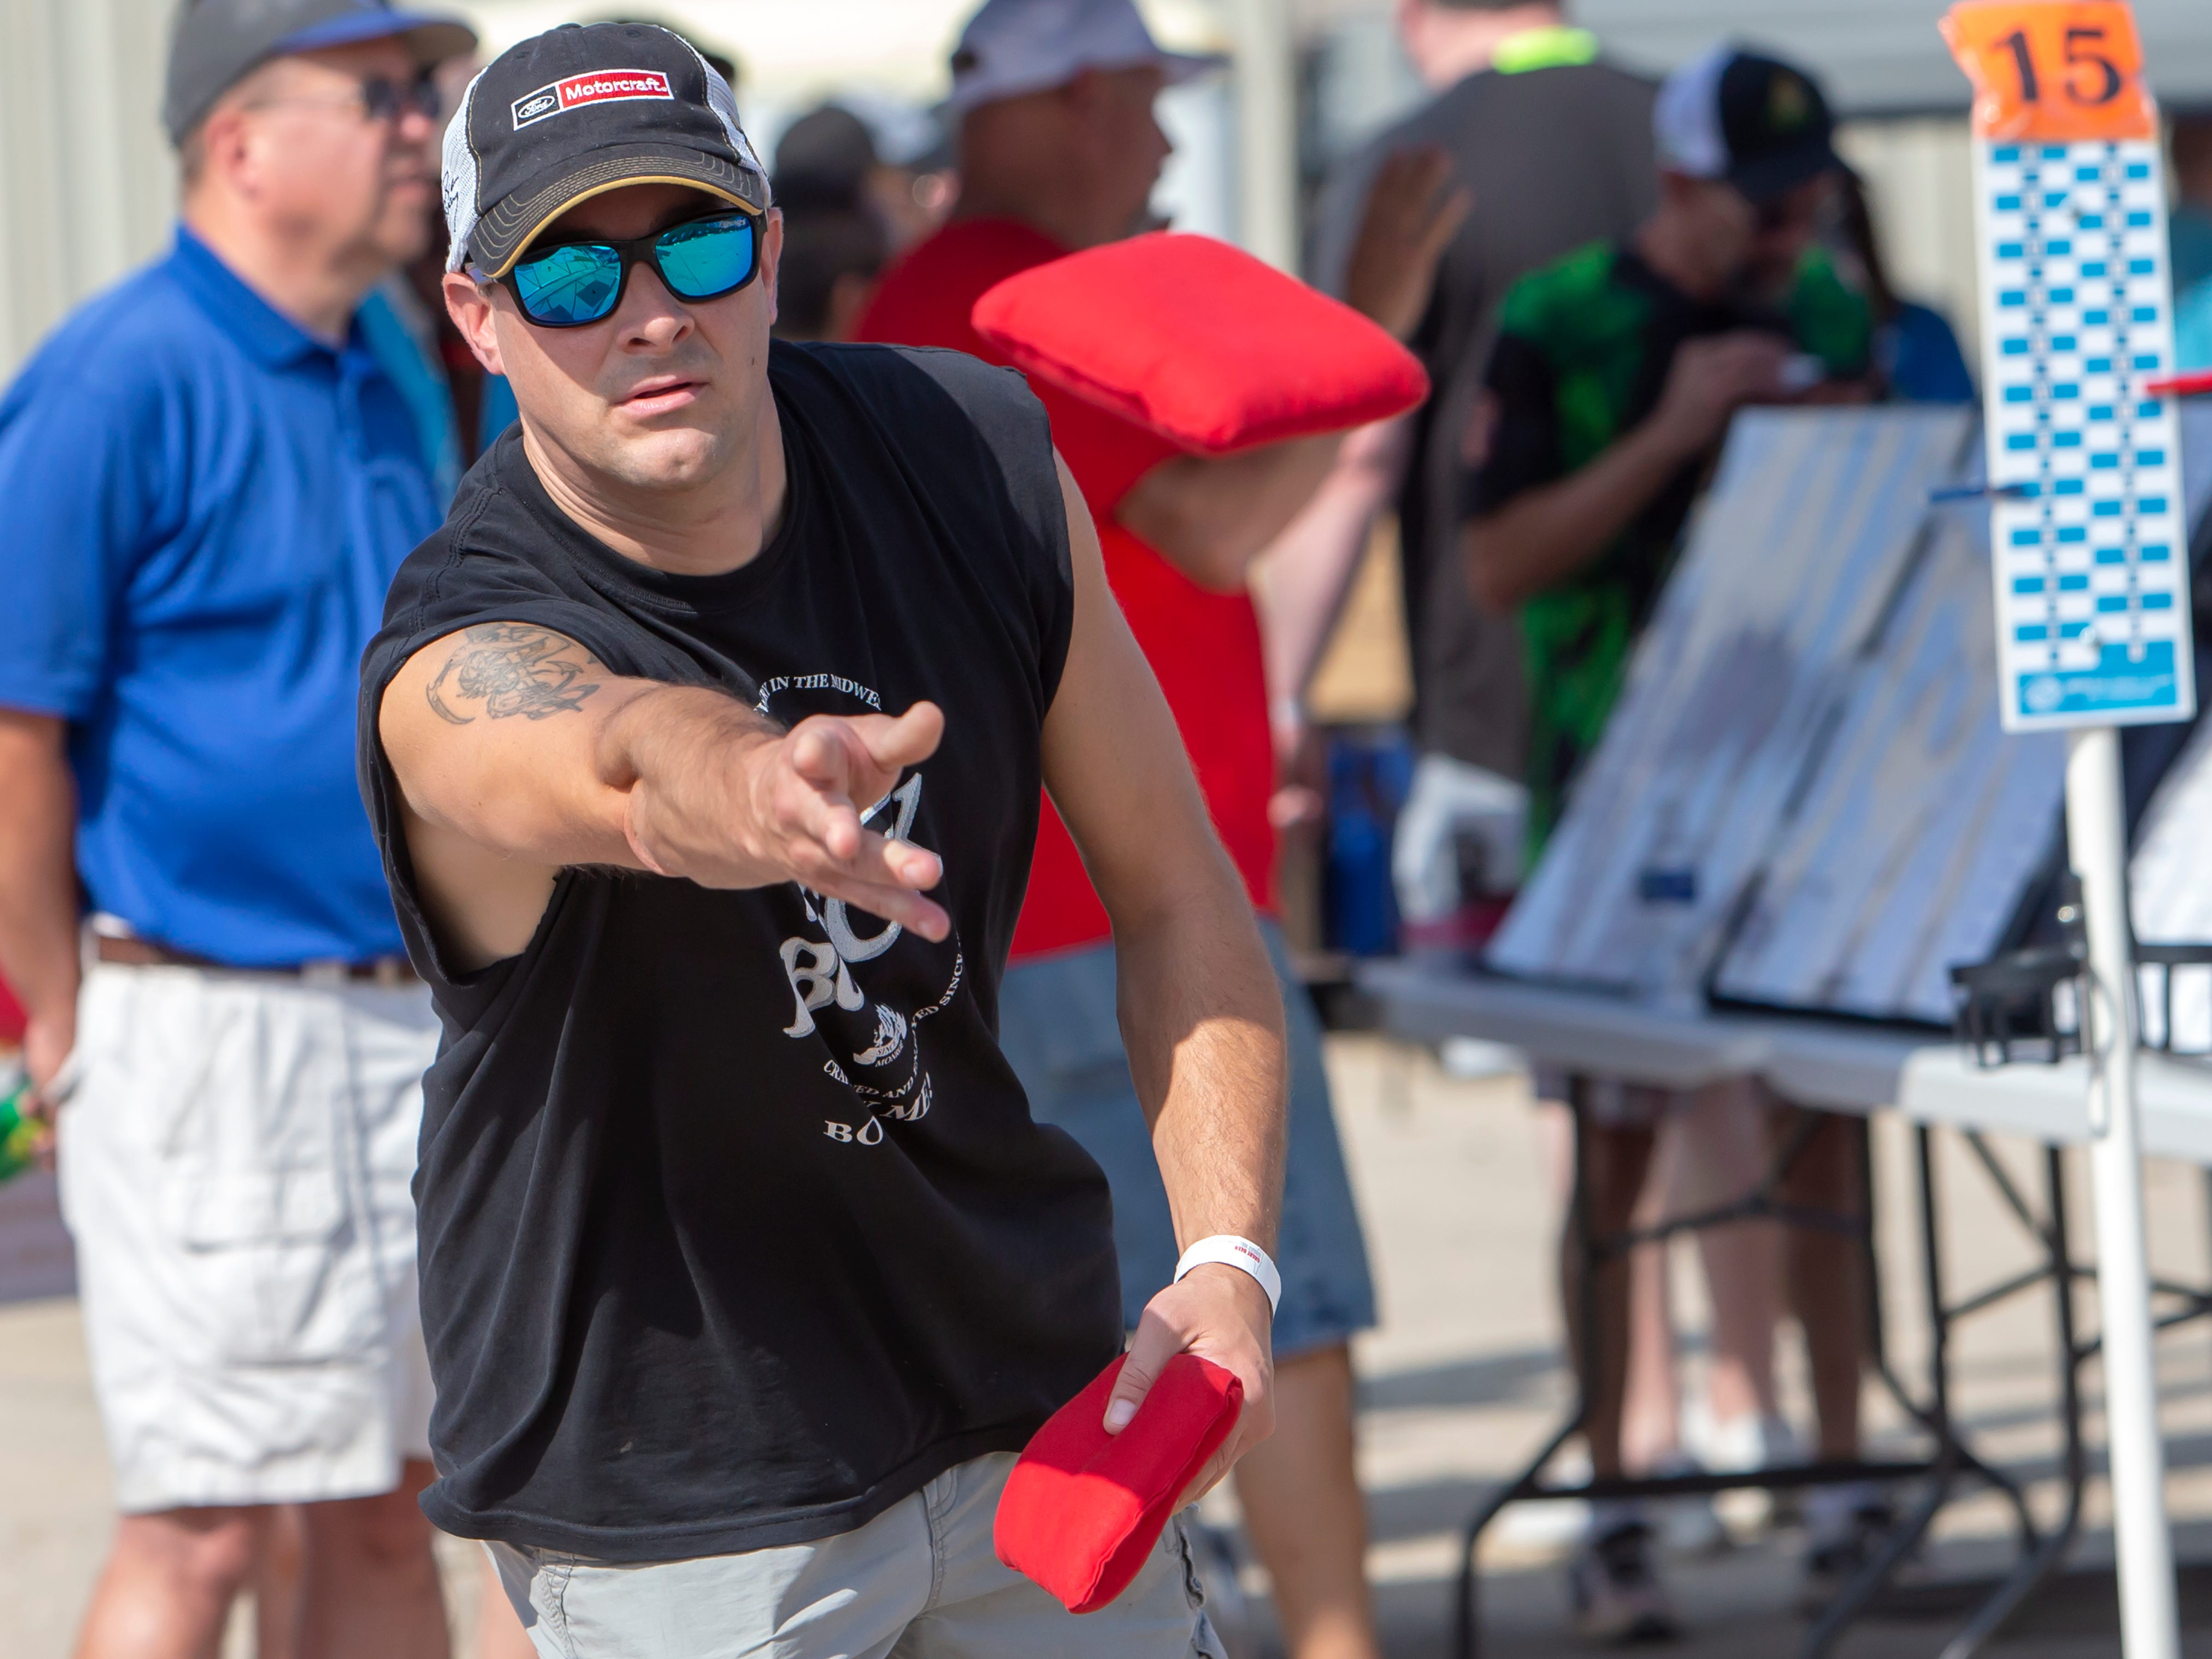 Mike Huber tosses a bean bag competing in the Wisconsin Cornhole Tourney at Dockside Tavern in Oshkosh on Saturday, Sept. 15, 2018.